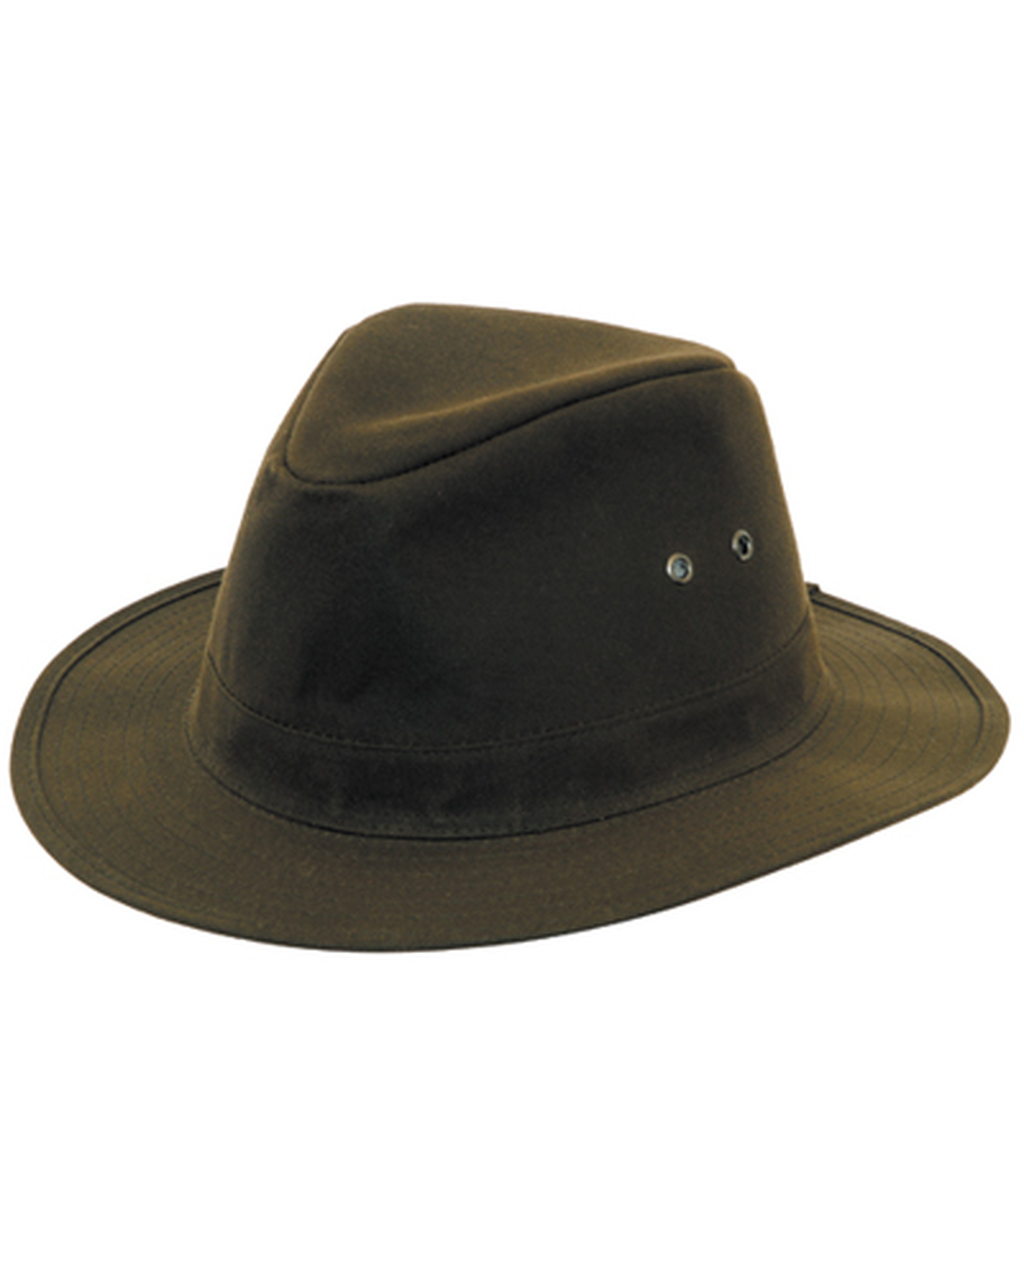 Hoggs of Fife Indiana Waxed Hat